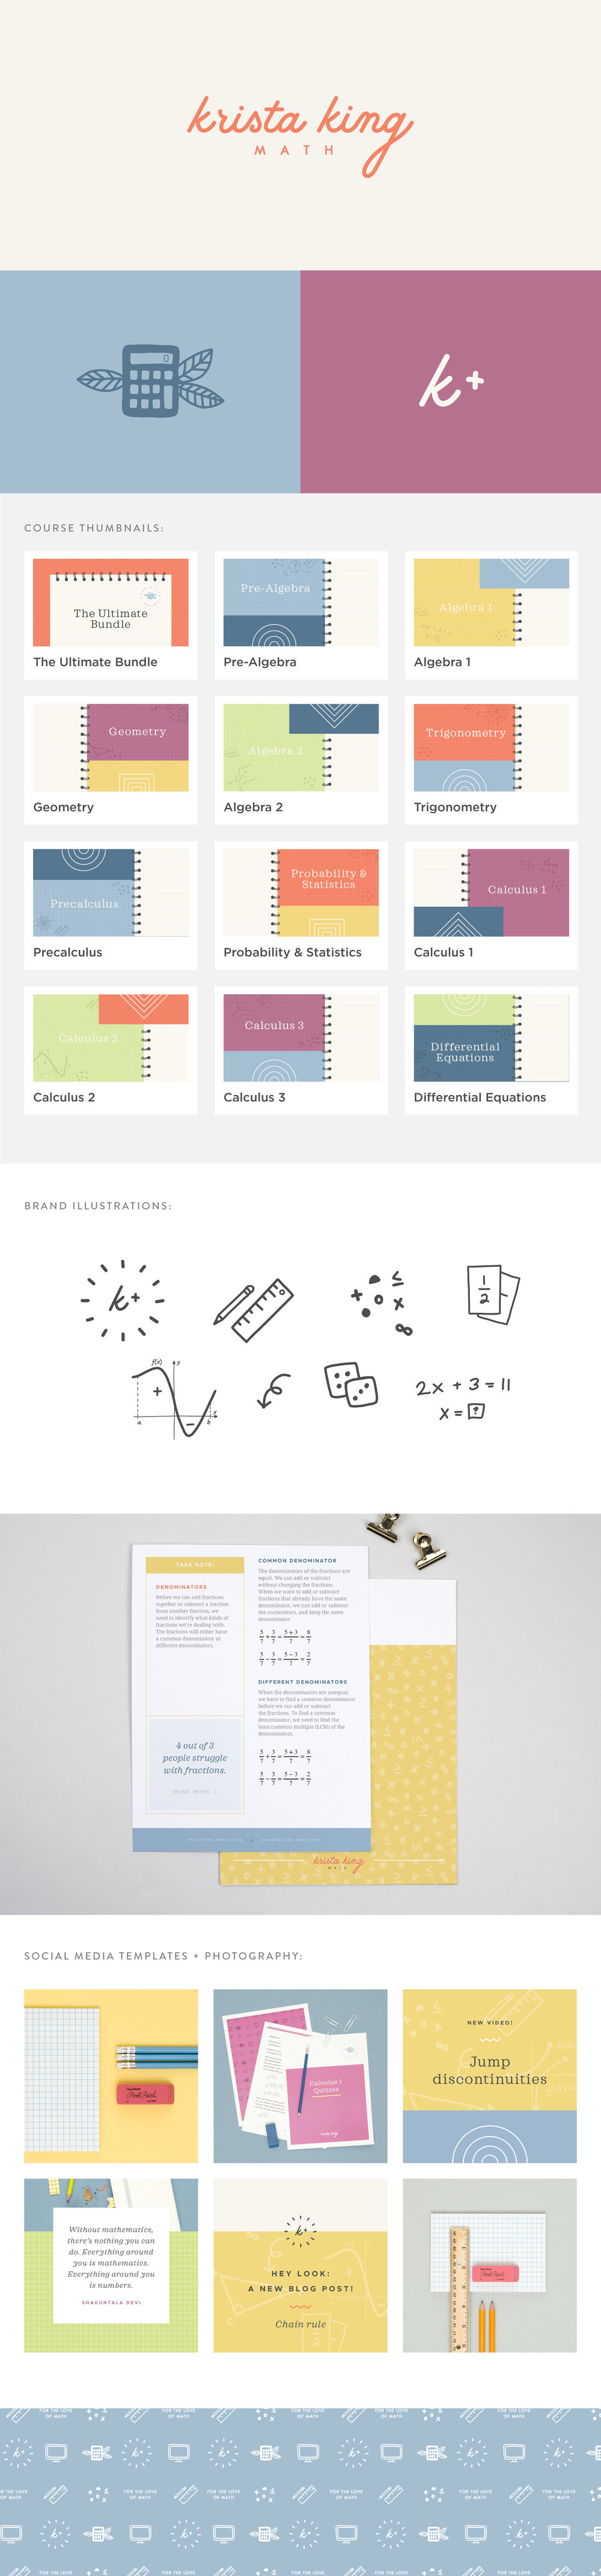 Krista King Math brand identity | Spruce Rd. | logo design, pattern design, online marketing, e-course design, branding, illustration, modern, worksheet design